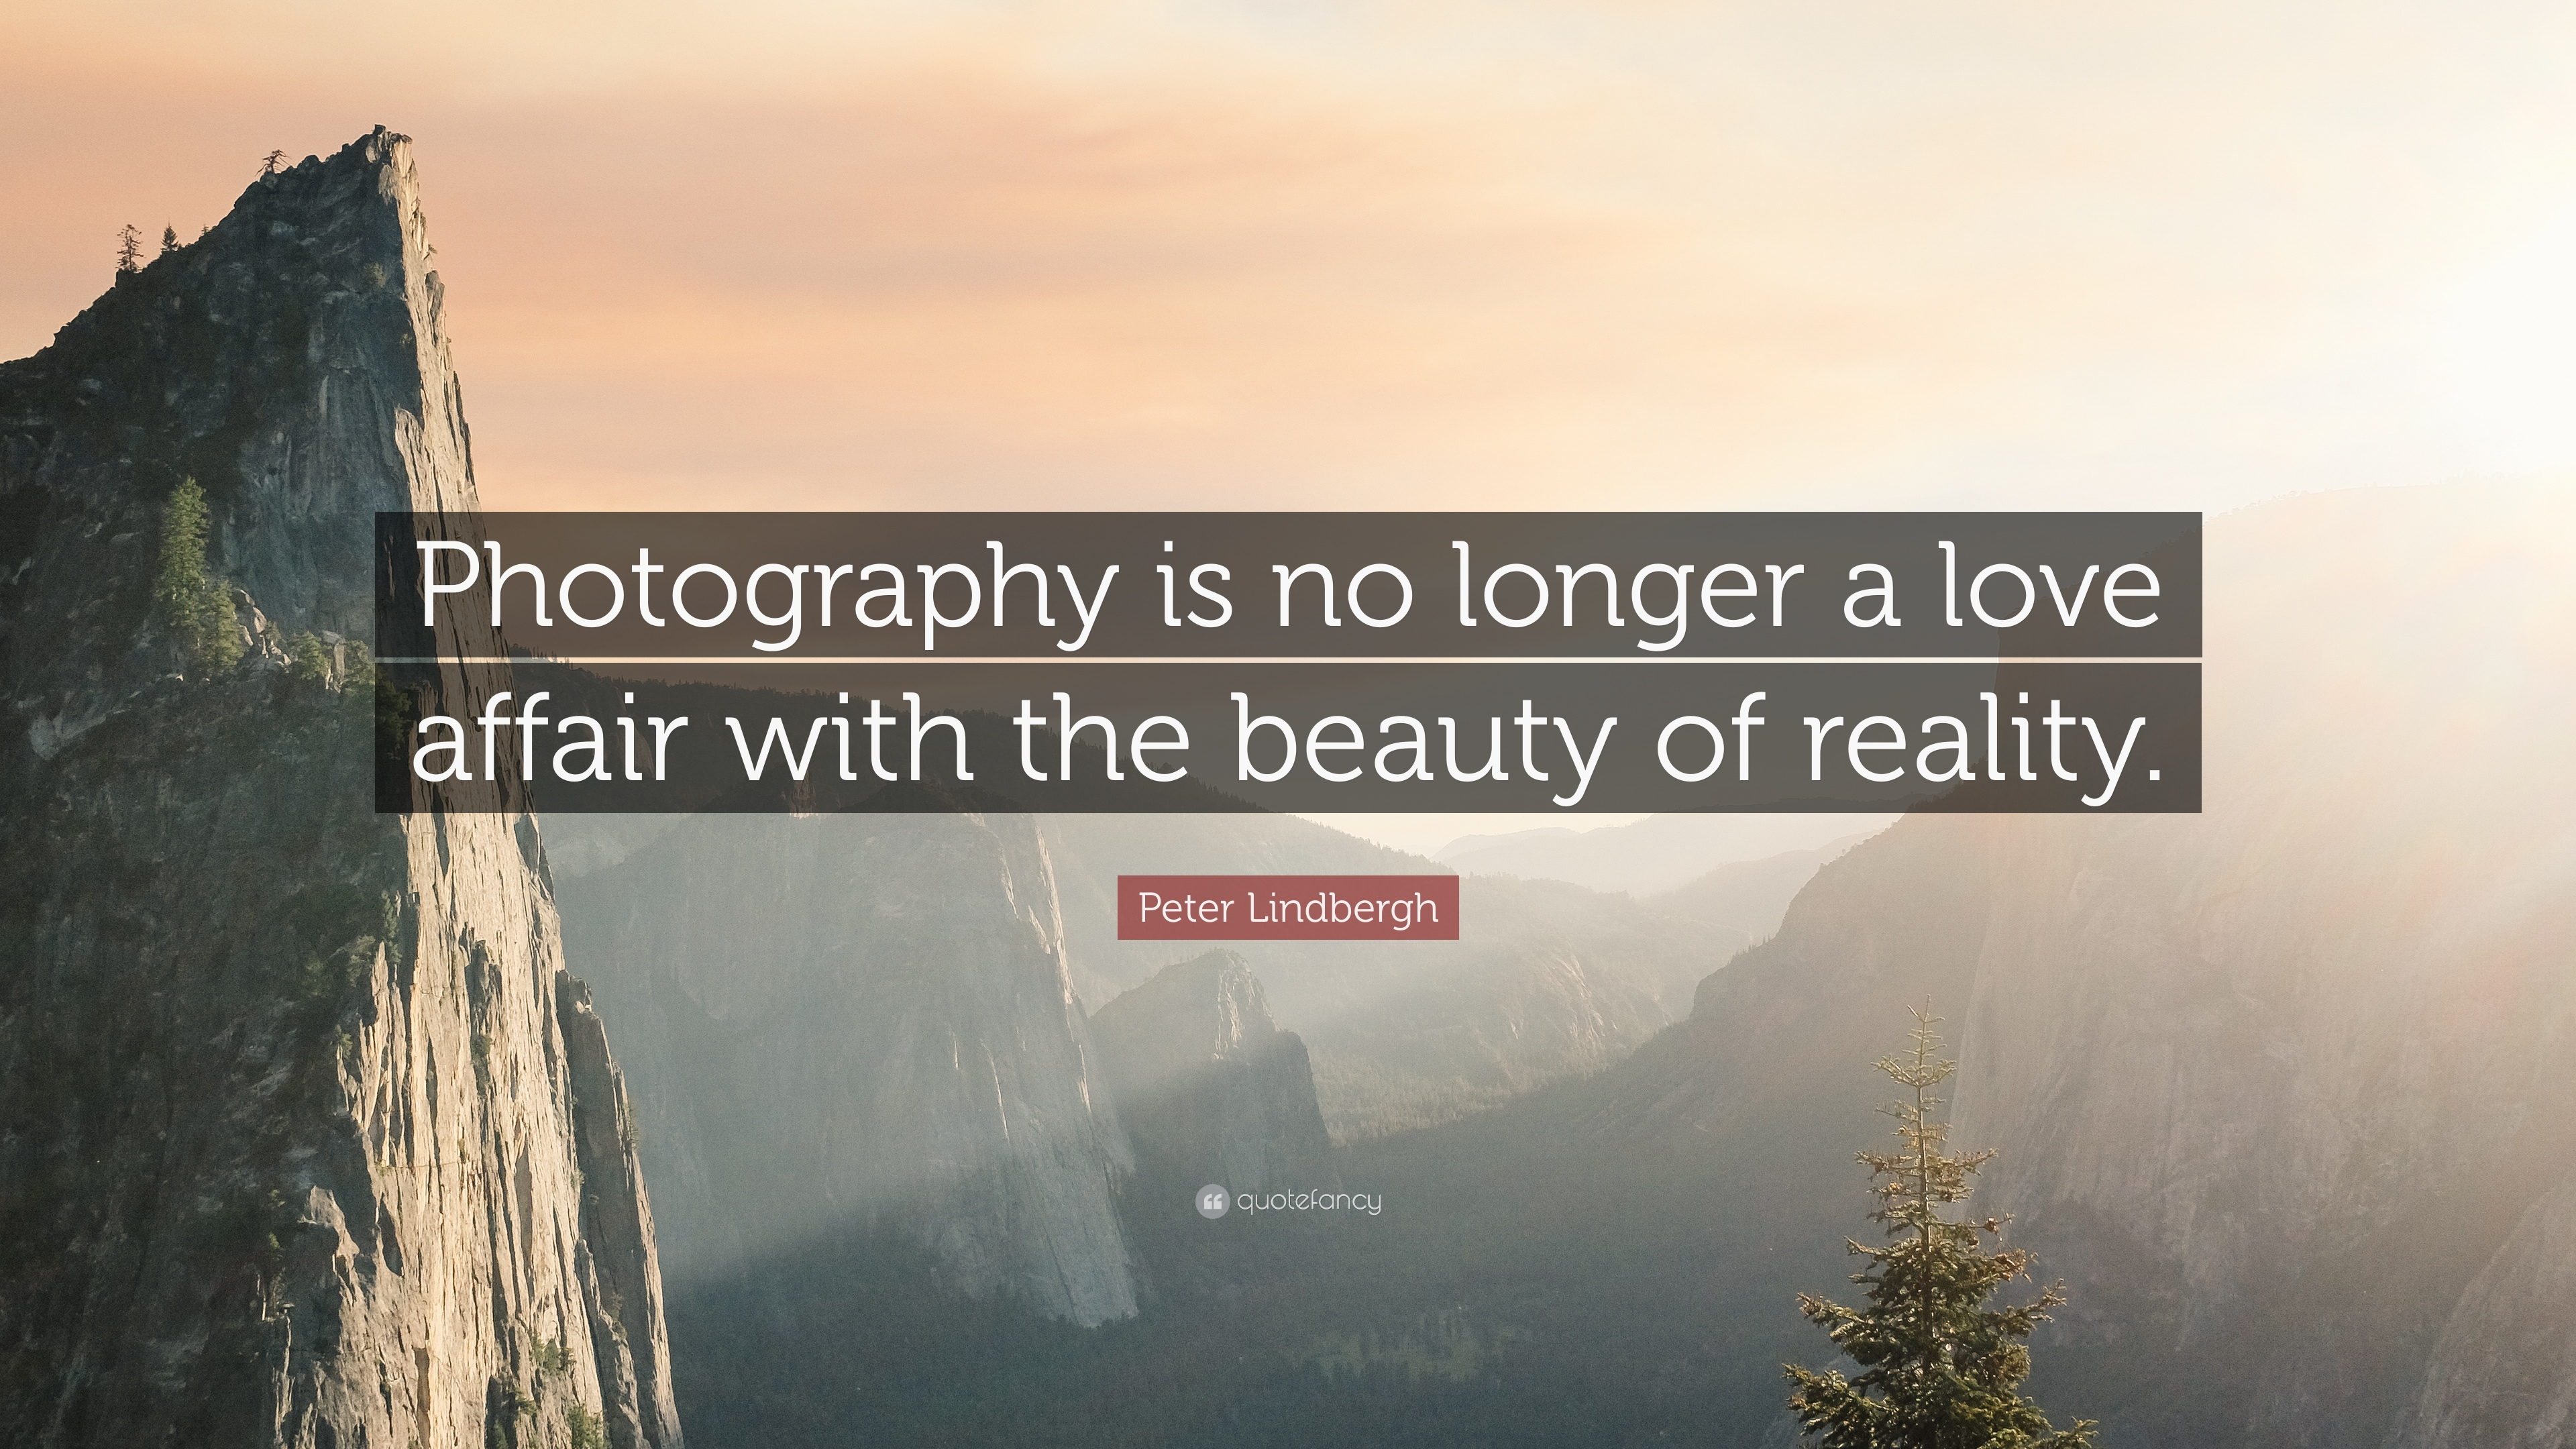 Peter Lindbergh Quote Photography Is No Longer A Love Affair With The Beauty Of